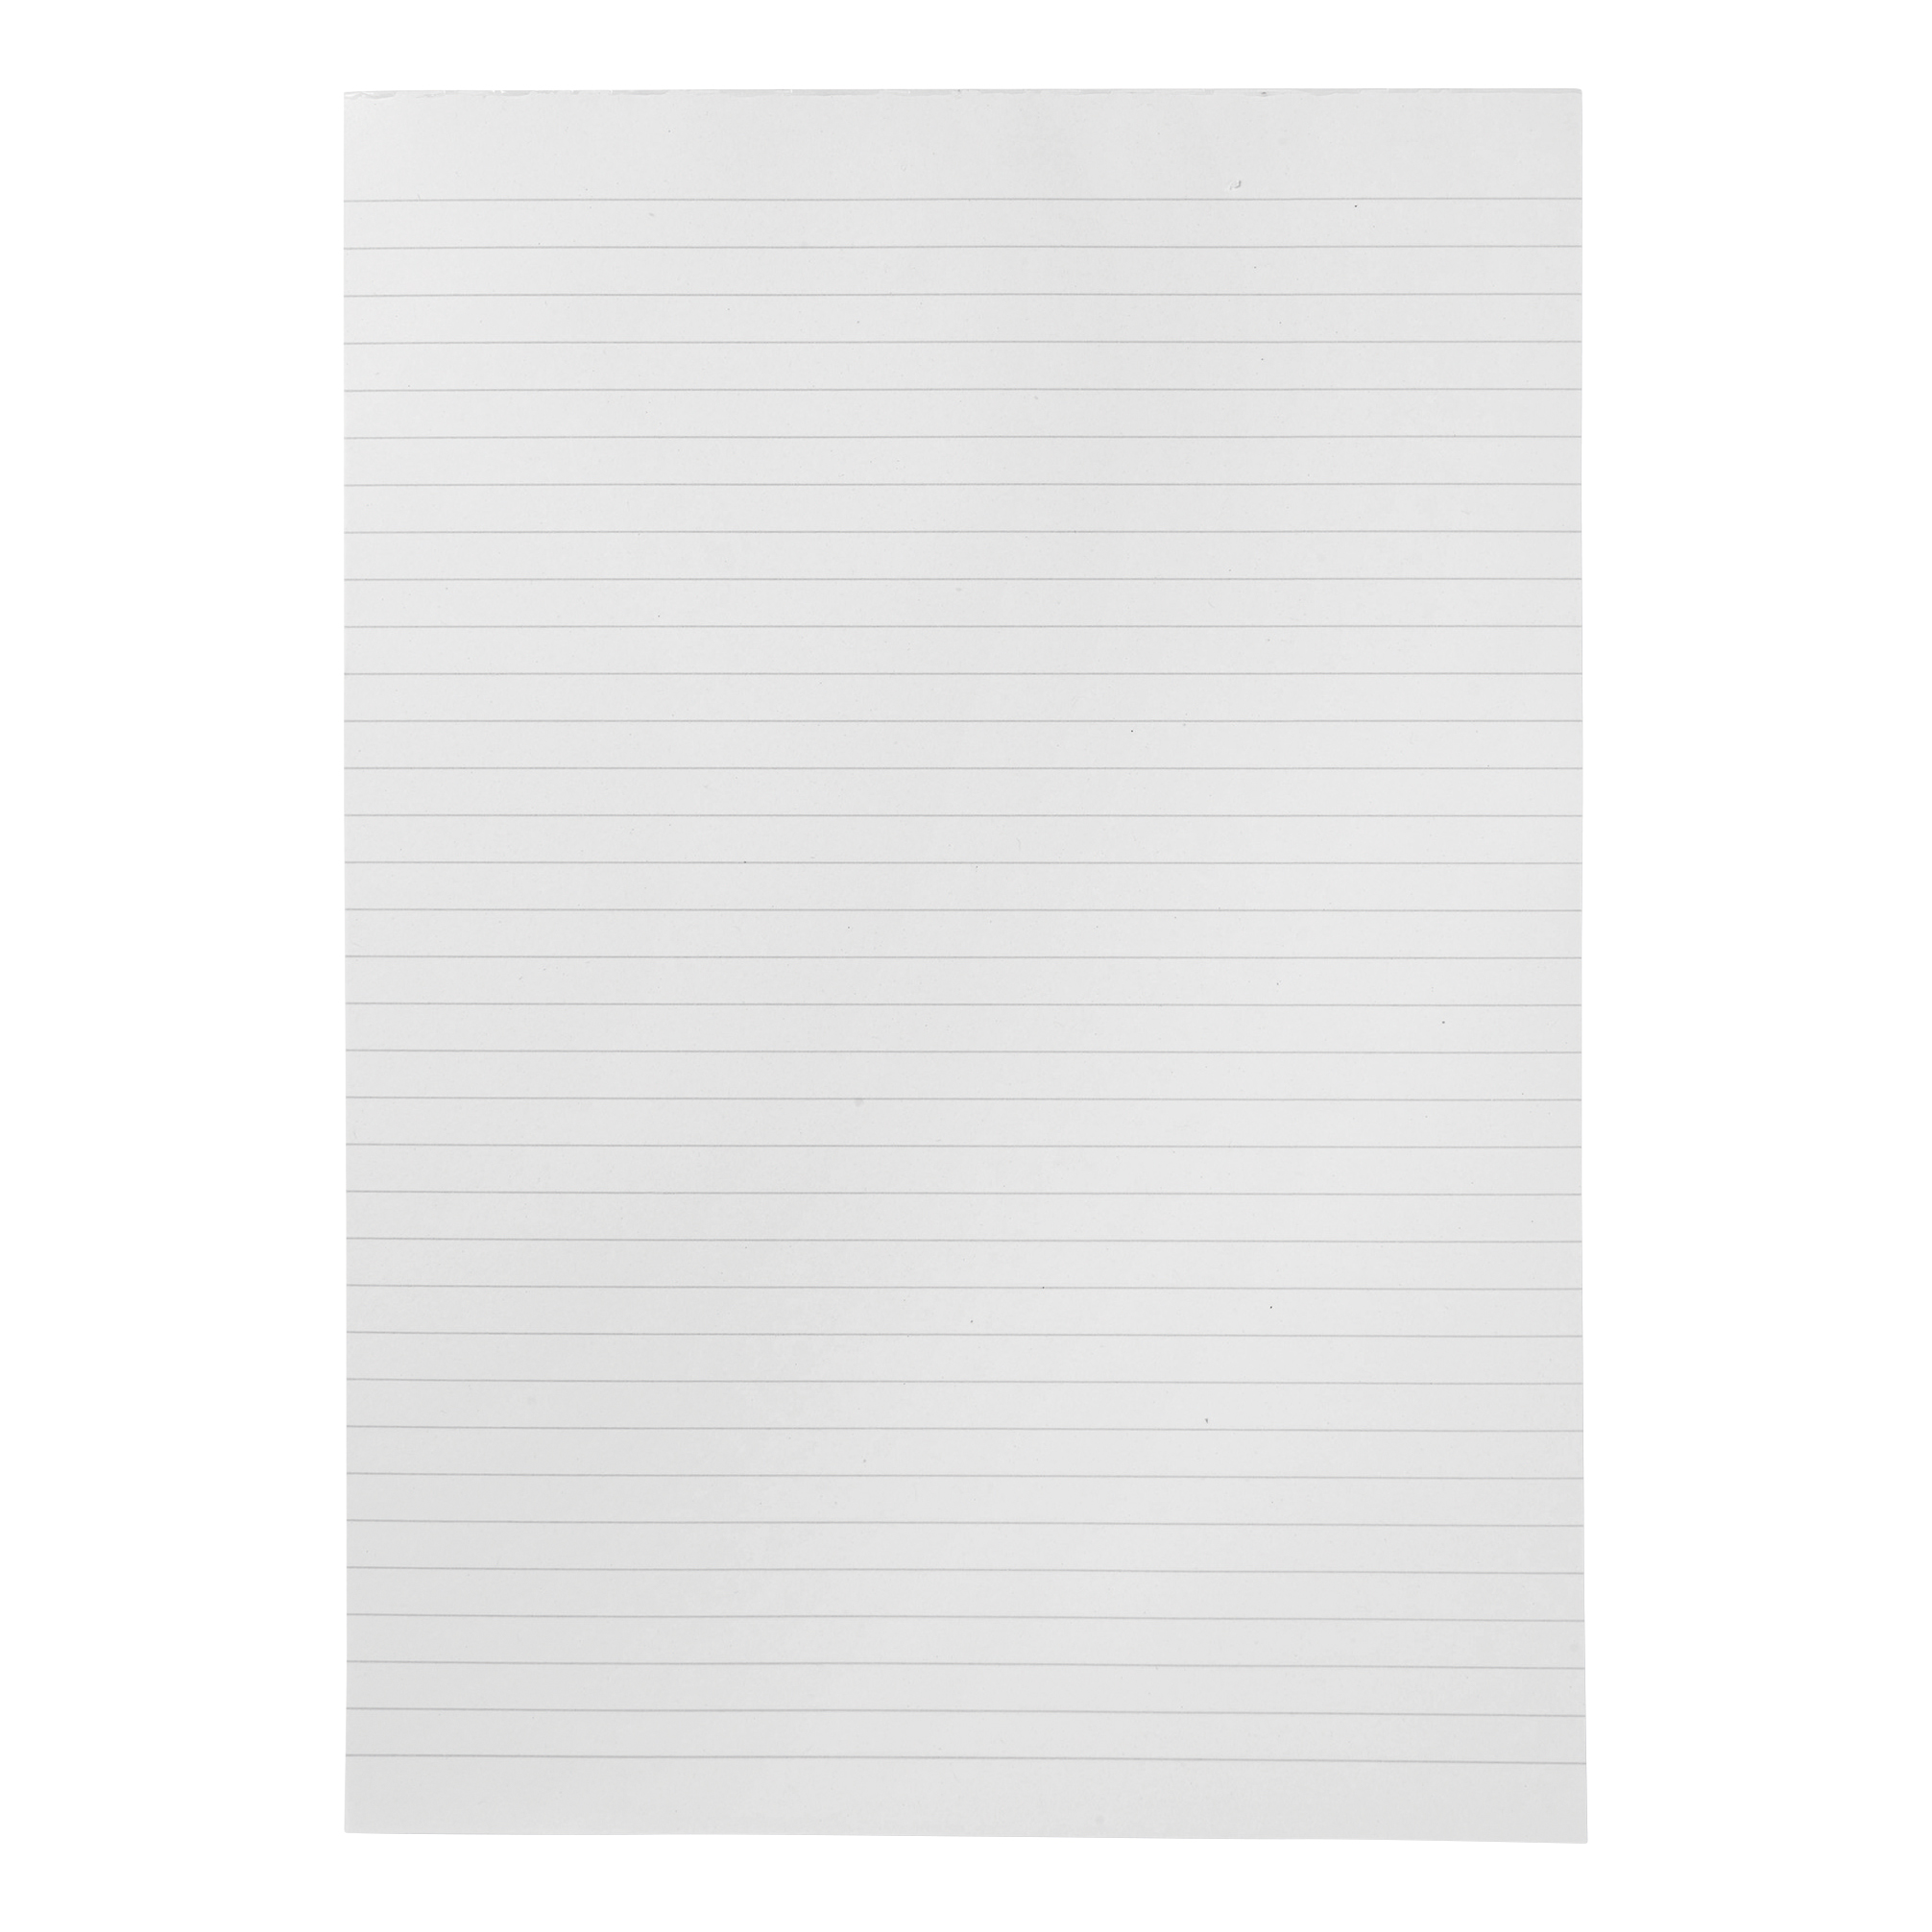 5 Star Eco Recycled Memo Pad Headbound 70gsm Ruled 160pp A4 White Paper Pack 10